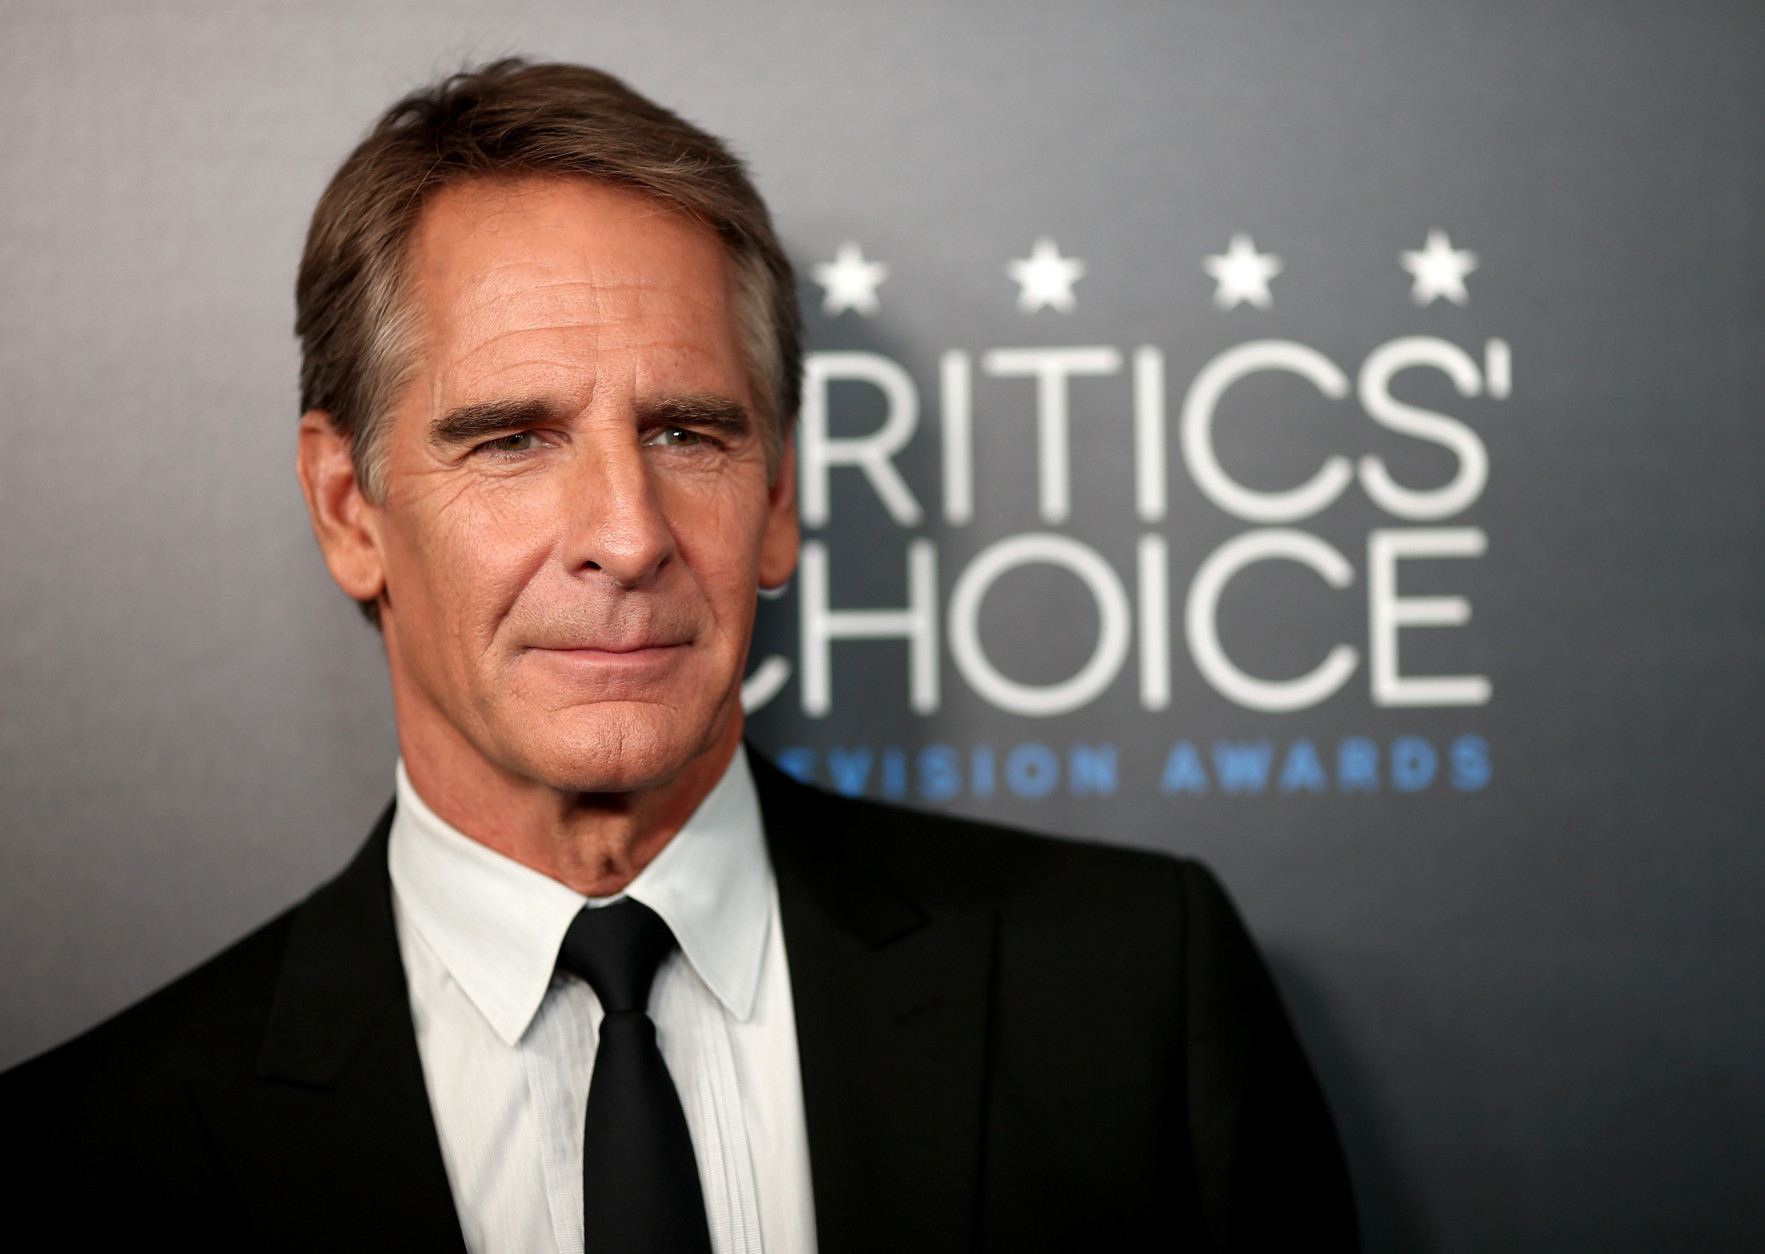 BEVERLY HILLS, CA - MAY 31:  Actor Scott Bakula attends the 5th Annual Critics' Choice Television Awards at The Beverly Hilton Hotel on May 31, 2015 in Beverly Hills, California.  (Photo by Christopher Polk/Getty Images for Critics' Choice Television Awards)